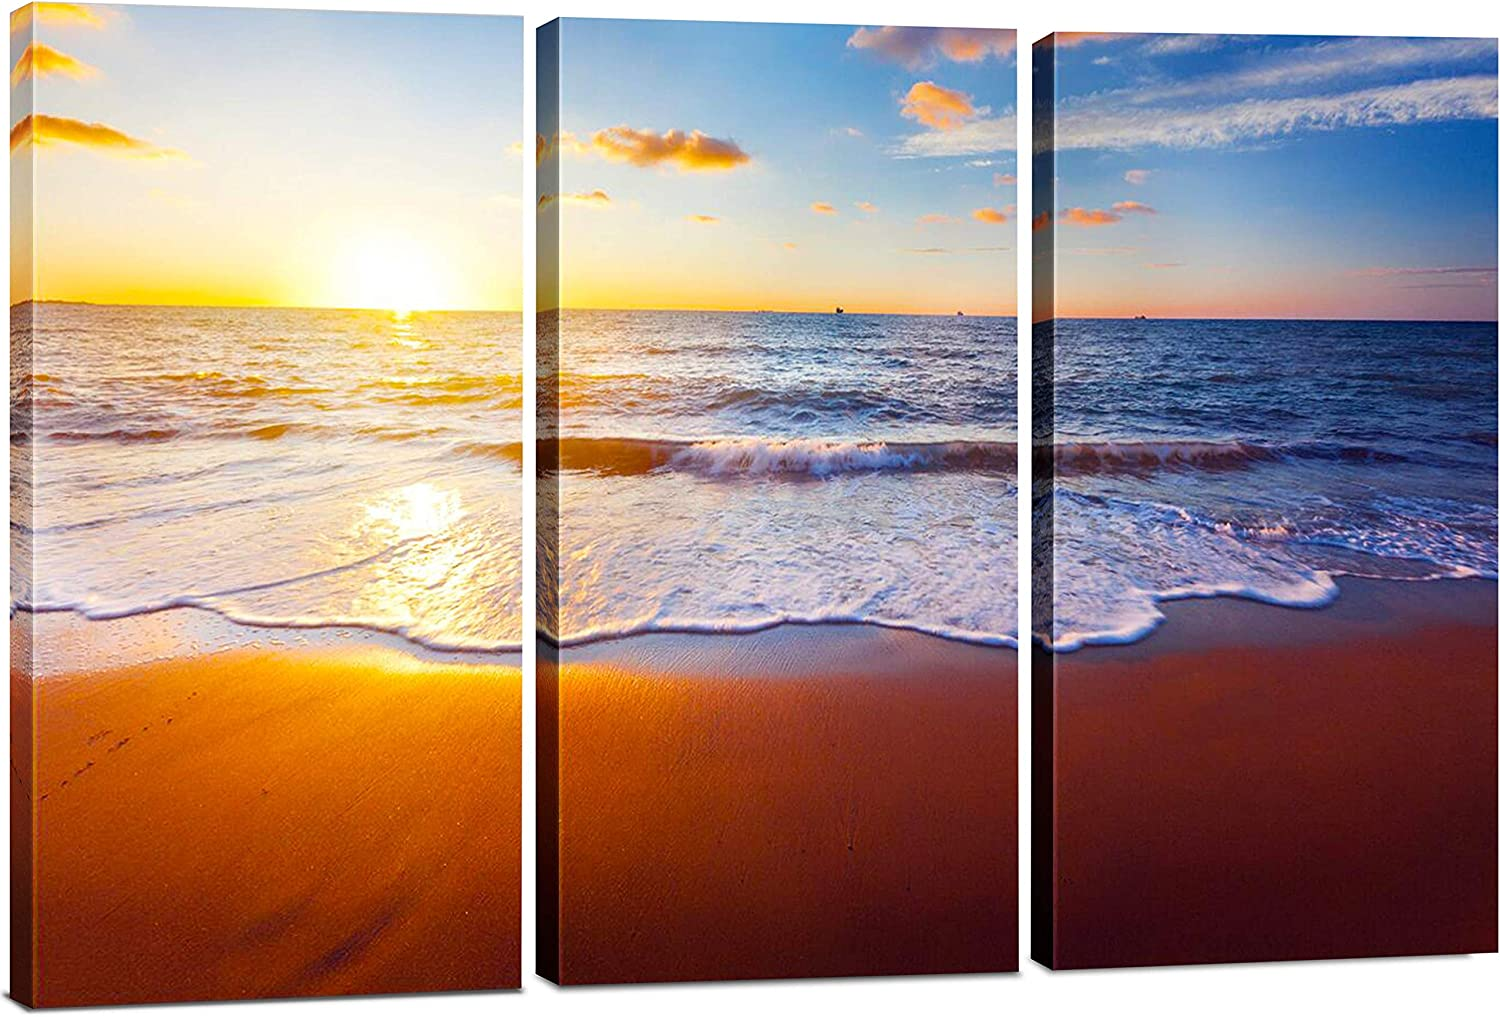 Best 3 Panel Sunset Beach Canvas Wall Art Decor, Modern 24x36 Hanging Ocean Print Photograph, Decorative Painting Artwork for Kitchen, Bedroom, Office, Living Room, Home Decor Gift for Men & Women